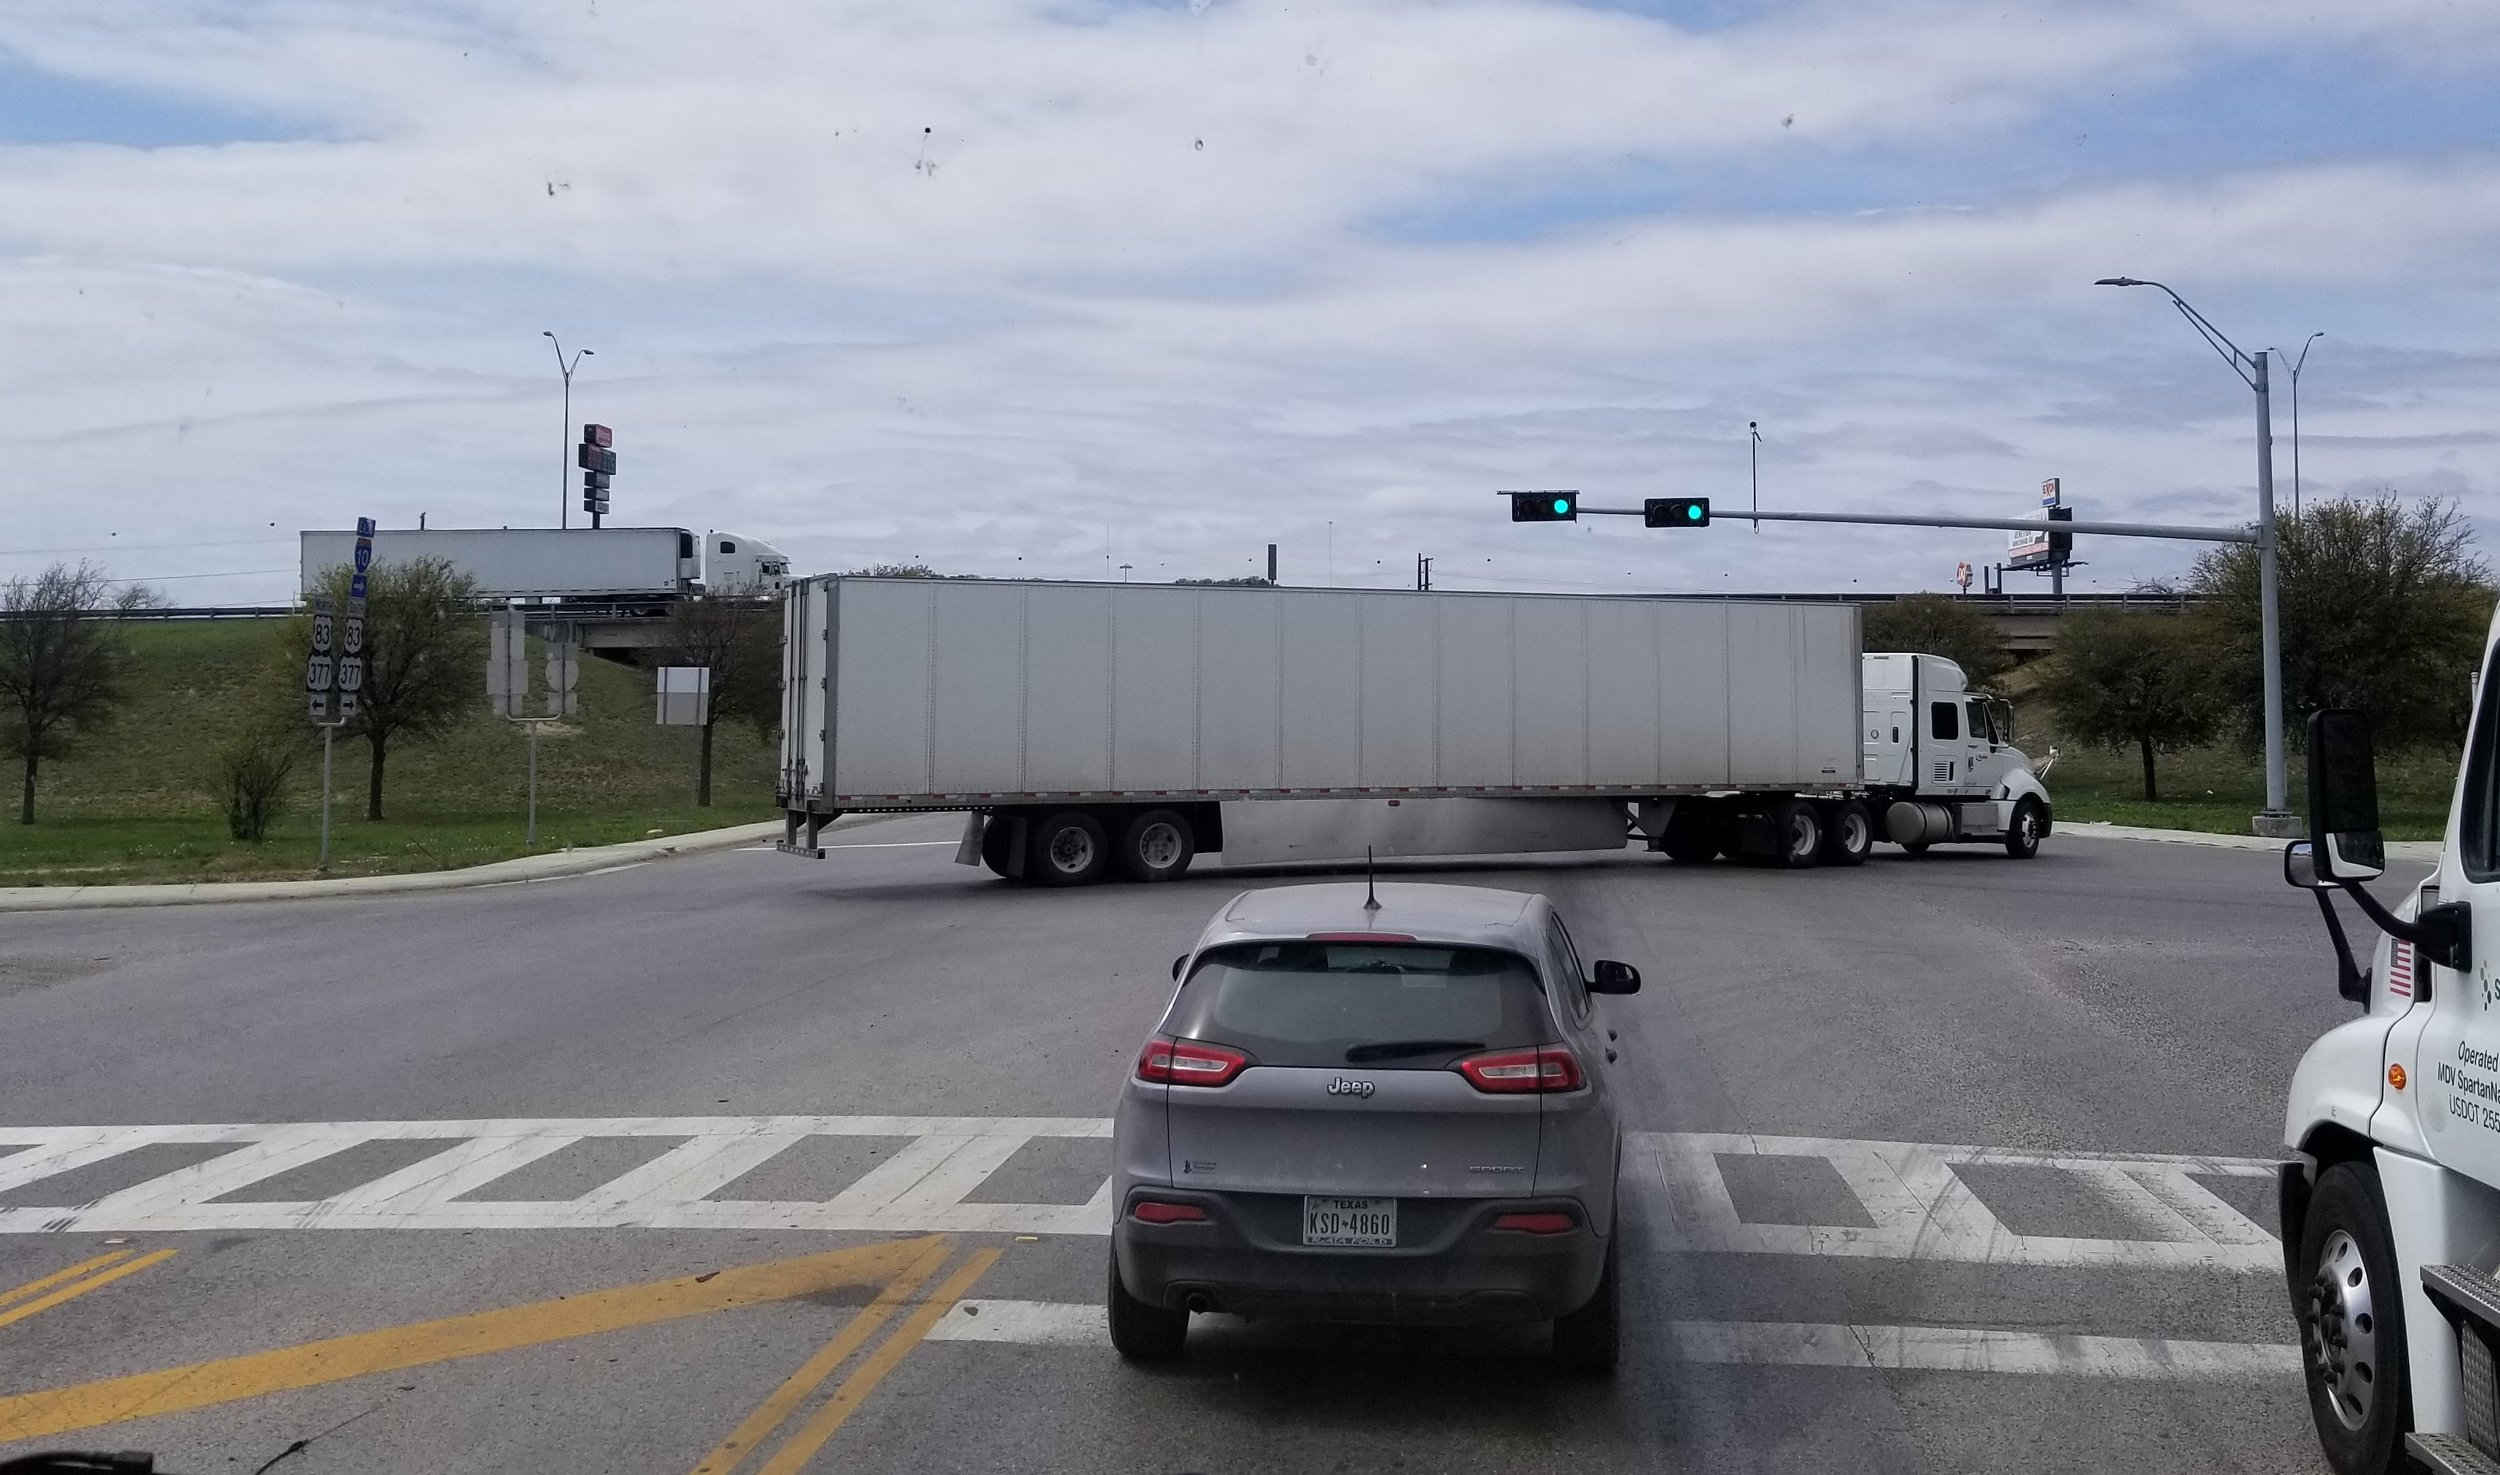 This poor bastard had his truck breakdown while turning and blocked the entire intersection.  We managed to find a hole big enough to make it around him.